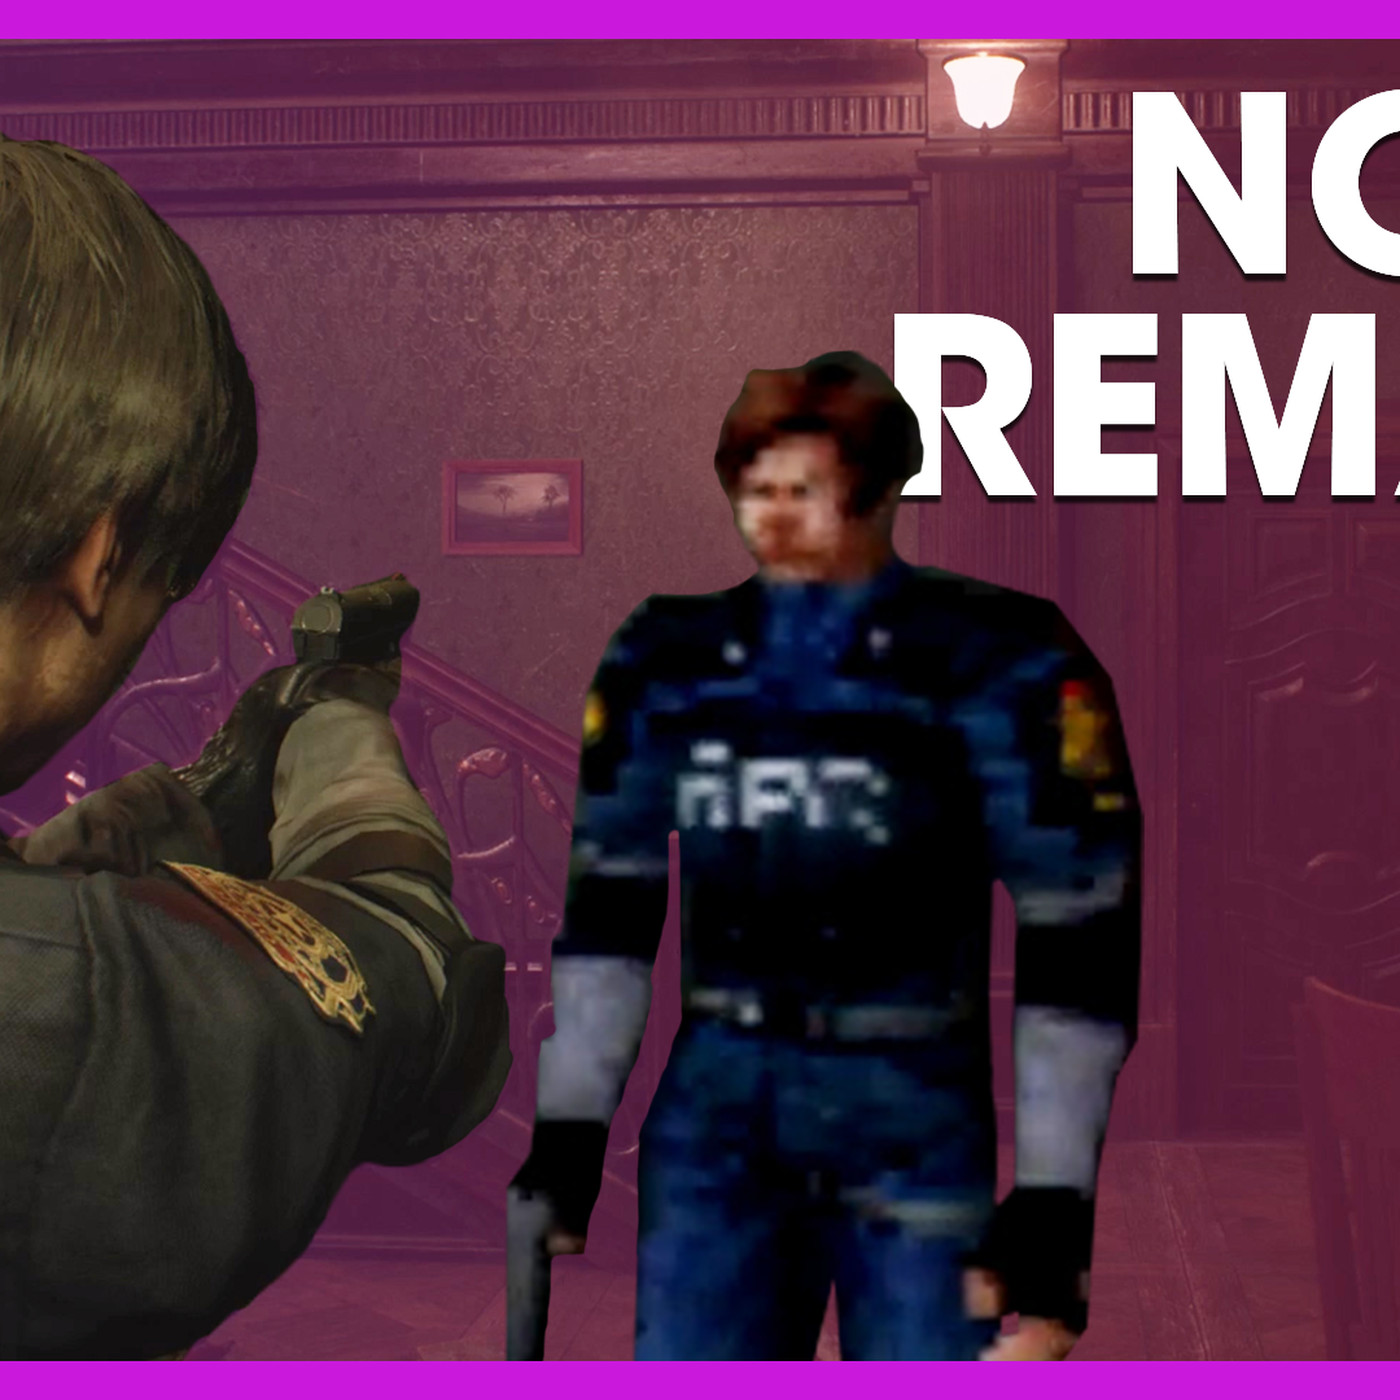 Resident Evil 2 is not the remake you think it is - Polygon